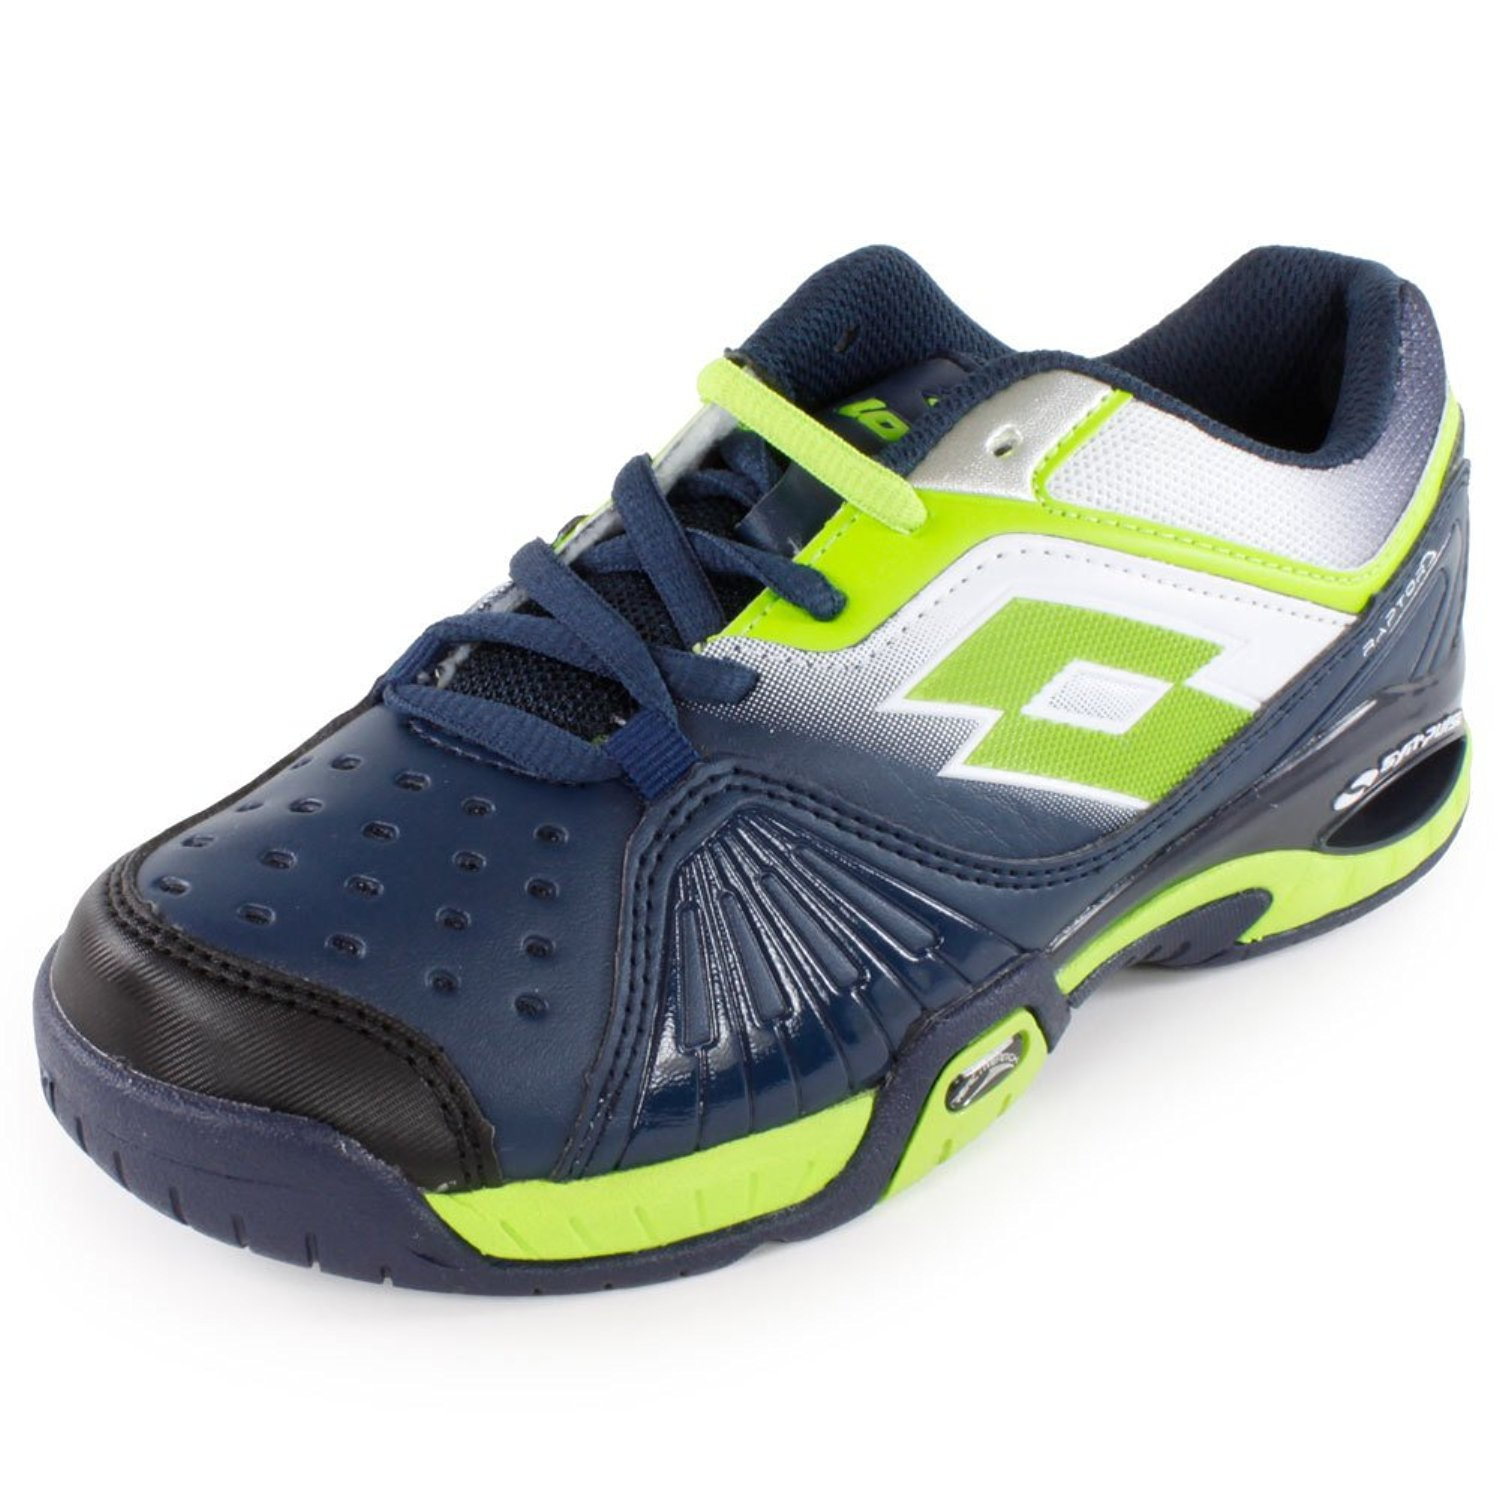 Buy Lotto Raptor Ultra IV Junior Tennis Shoe in Cheap Price on ... 510ce0517b7